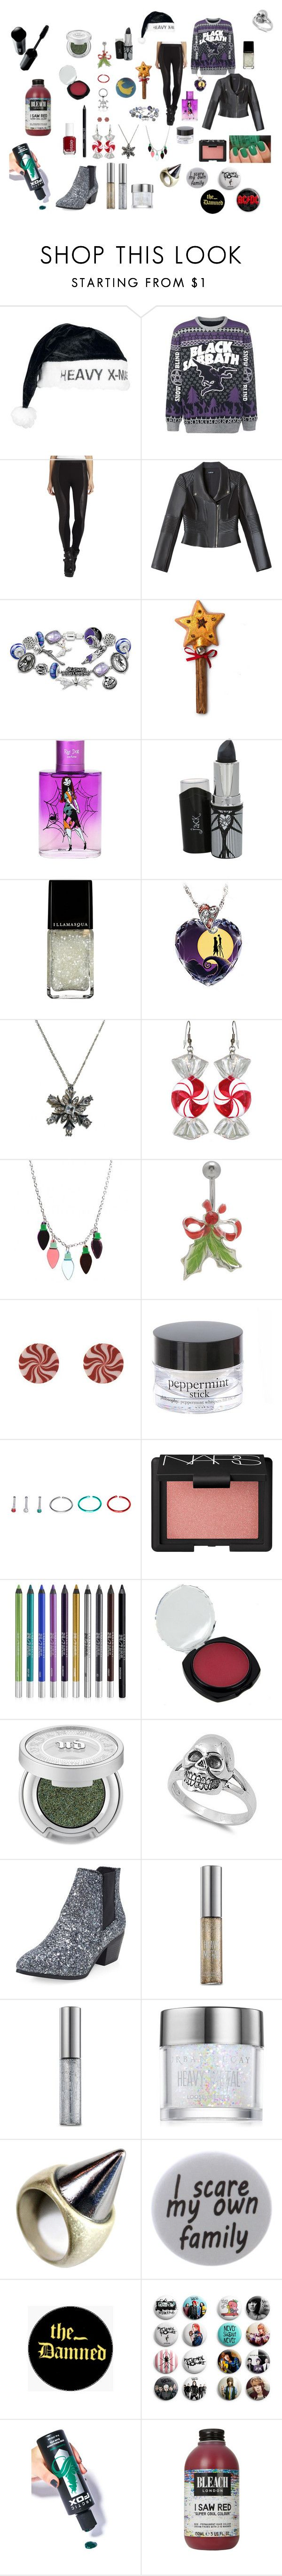 """""""Have yourself a heavy metal Christmas"""" by thegallowisgod ❤ liked on Polyvore featuring BCBGMAXAZRIA, Bebe, The Bradford Exchange, Jack Black, Illamasqua, Punky Pins, NARS Cosmetics, Urban Decay, Essie and Humör"""